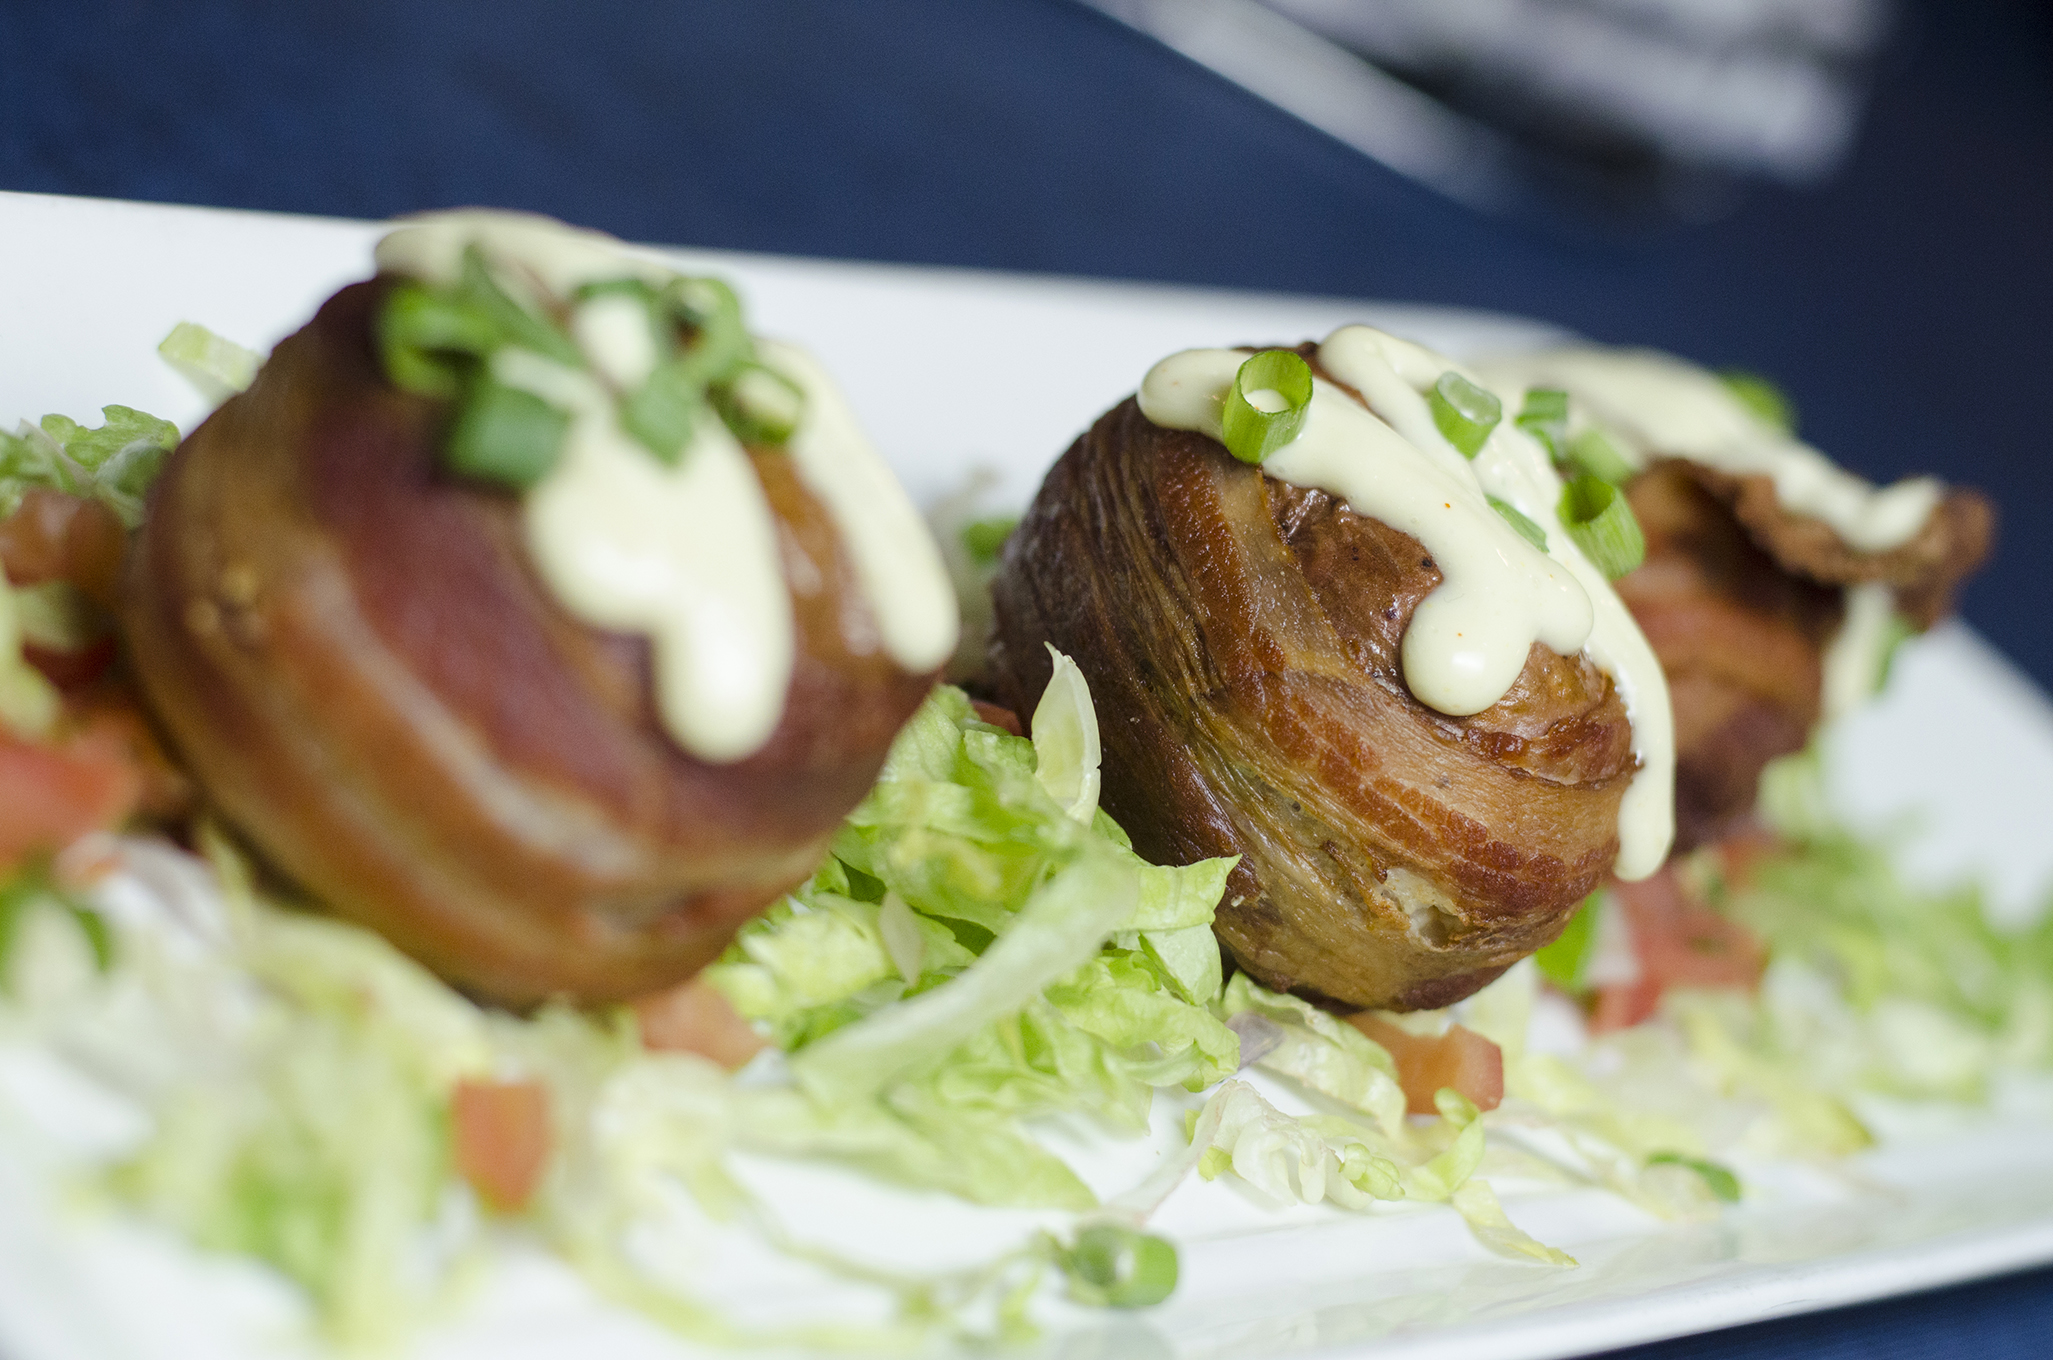 Bacon Wrapped Baked Potato Bombs from Bull & Barrel in Windsor, Ontario.